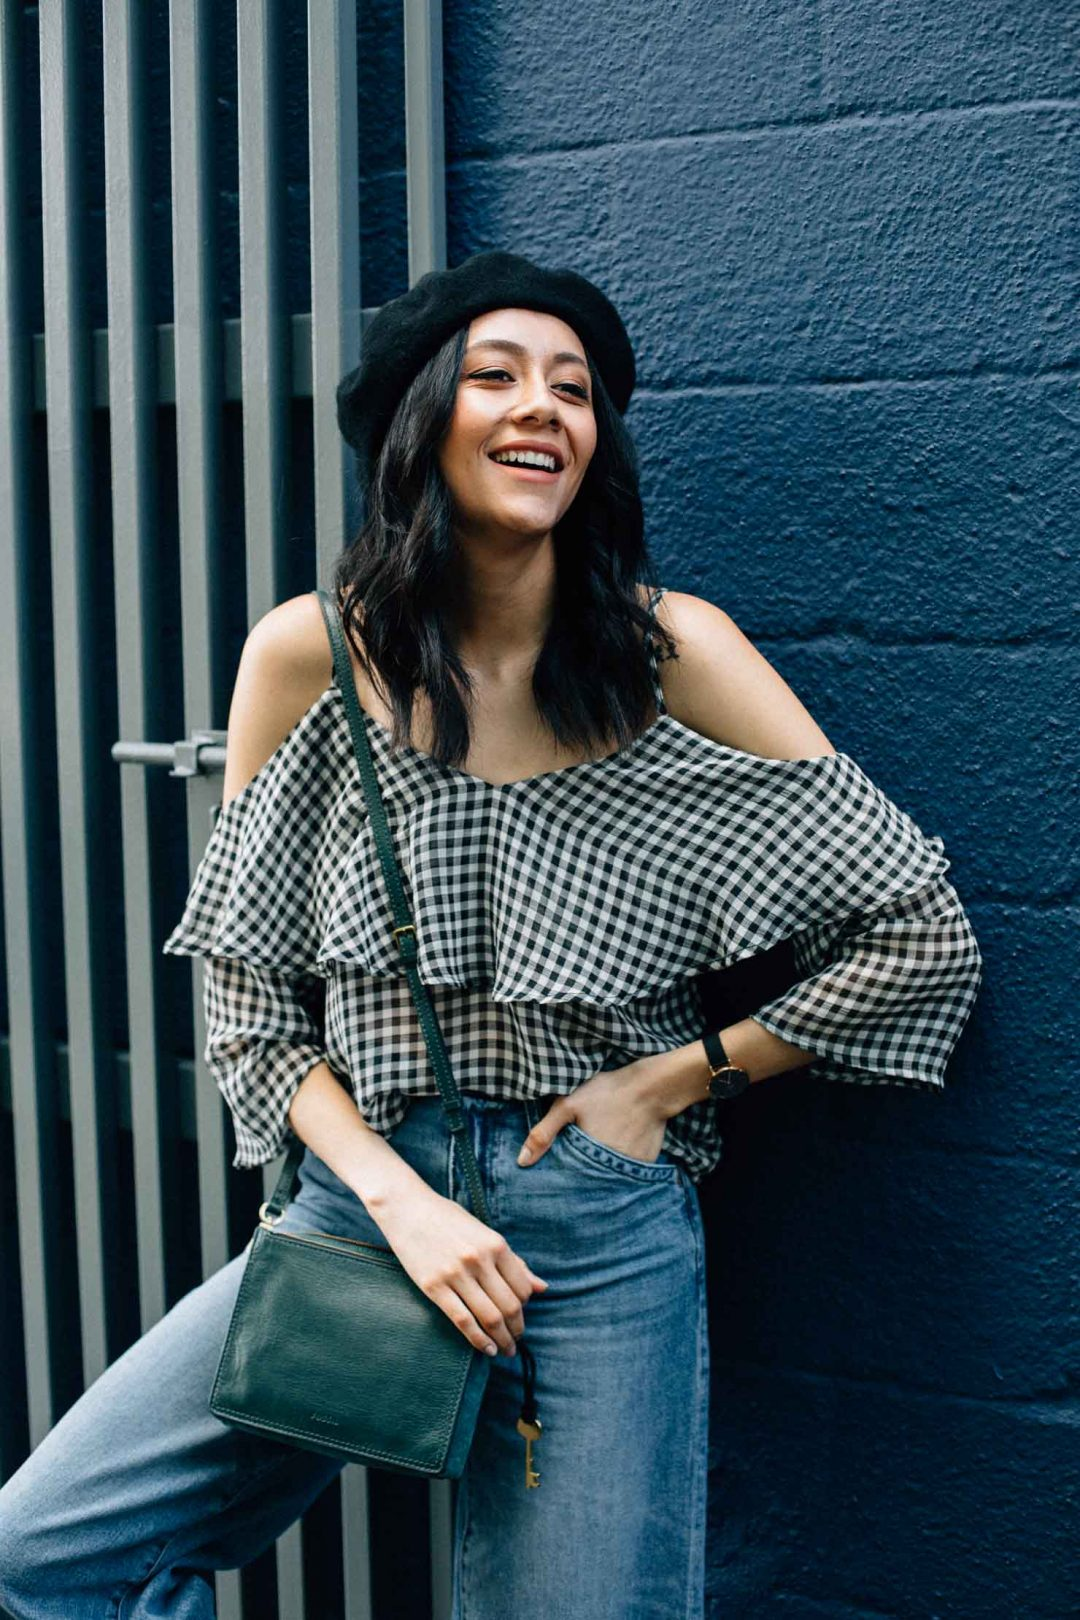 Houston based fashion blogger Lilly Beltran in a black & white Ten Sixty Sherman gingham top, wool beret and Fossil leather bag